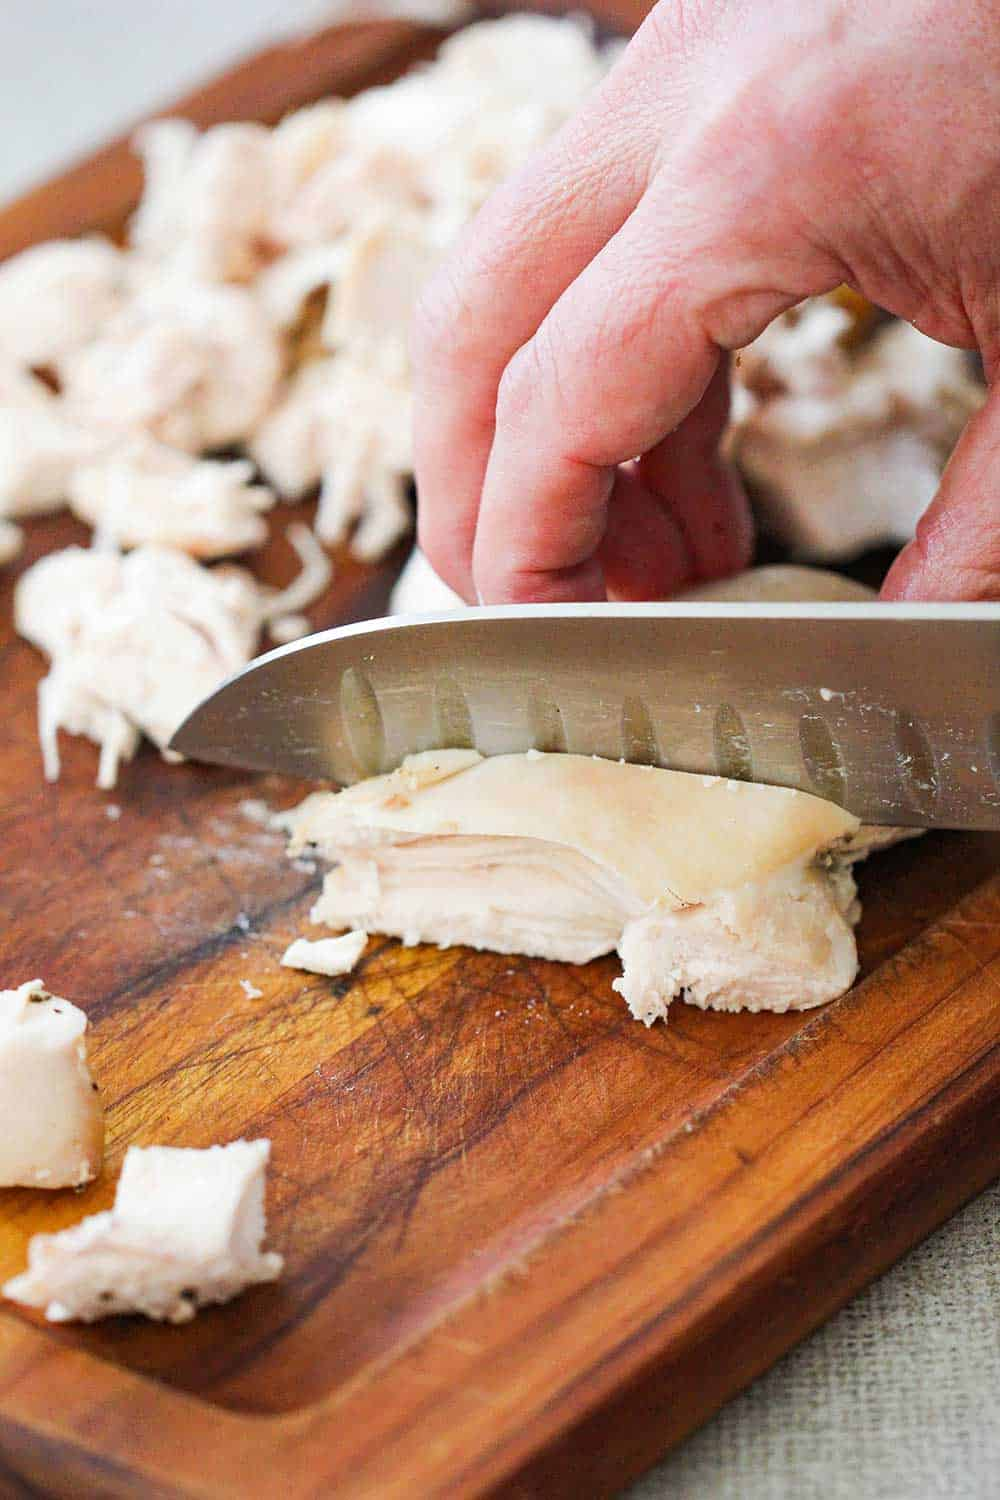 A hand using a large chef's knife to cube cooked chicken on a cutting board.